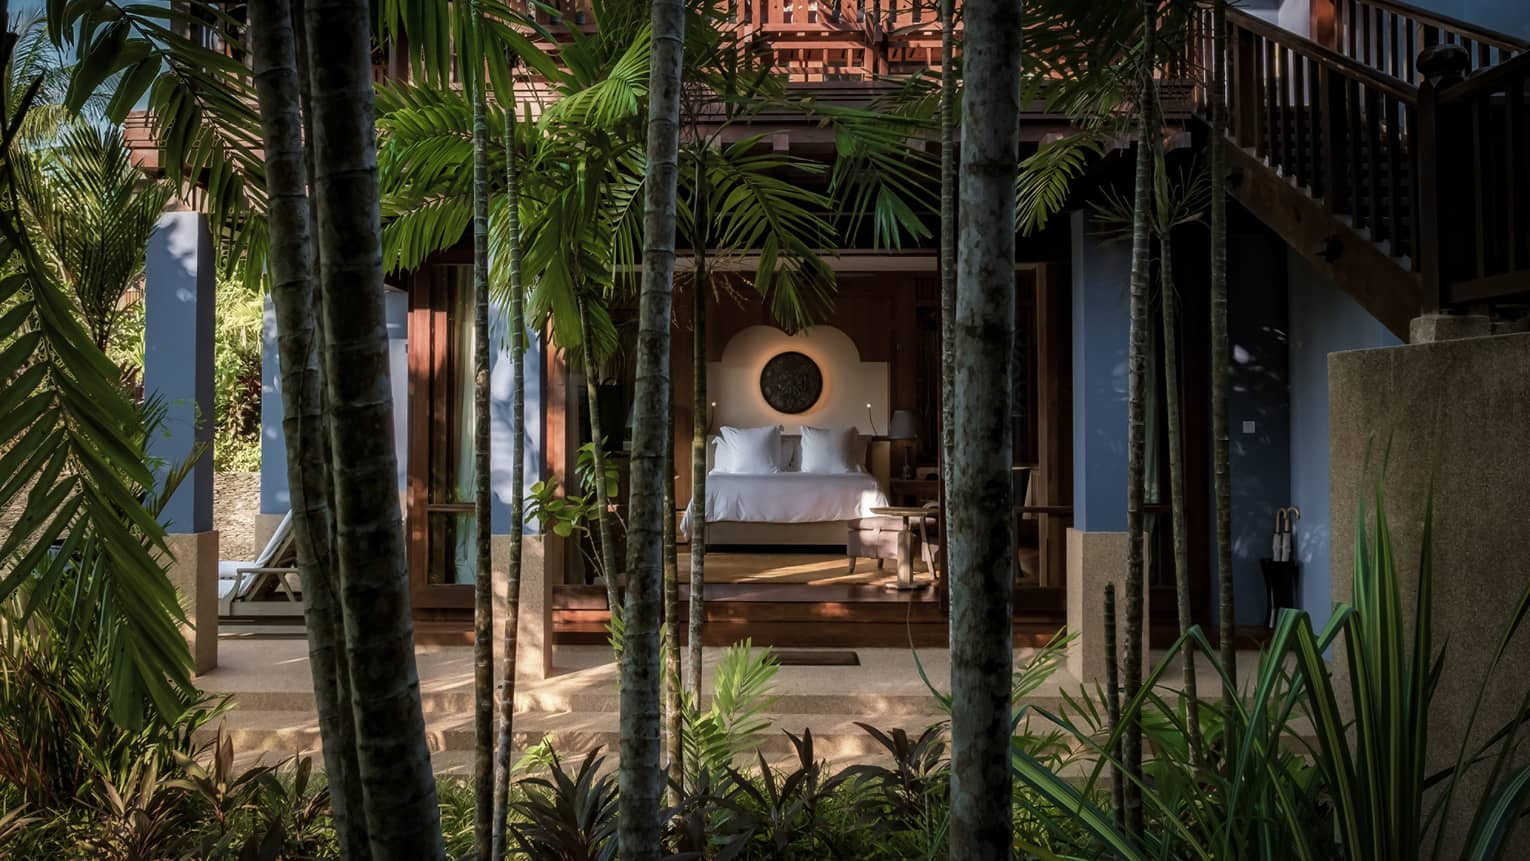 Garden View Pavilion bedroom from behind tall palm tree trunks